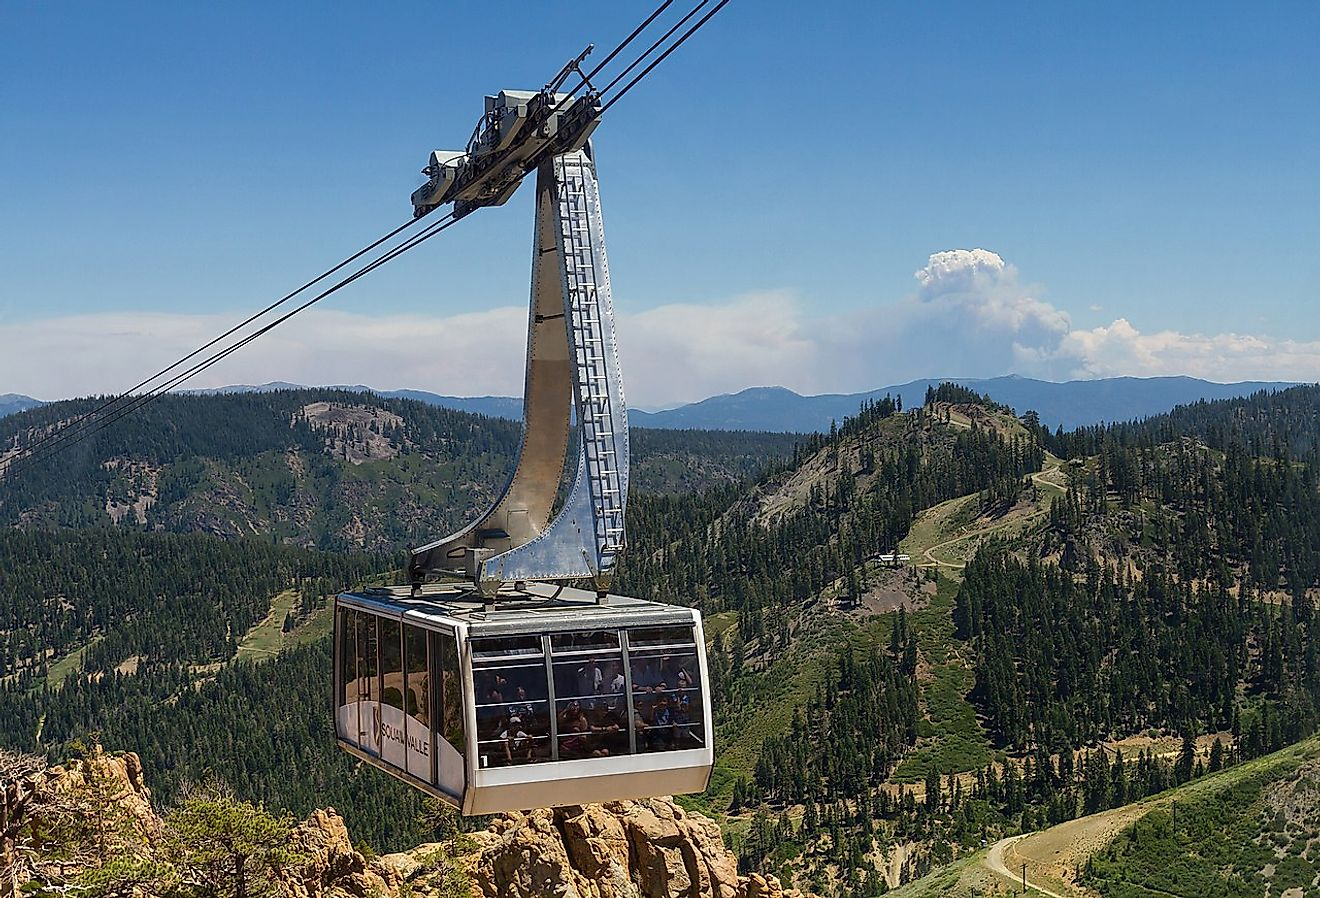 Gondola on its way to the 1960 Winter Olympics High Camp in Squaw Valley, High Sierra. Image credit: © Frank Schulenburg